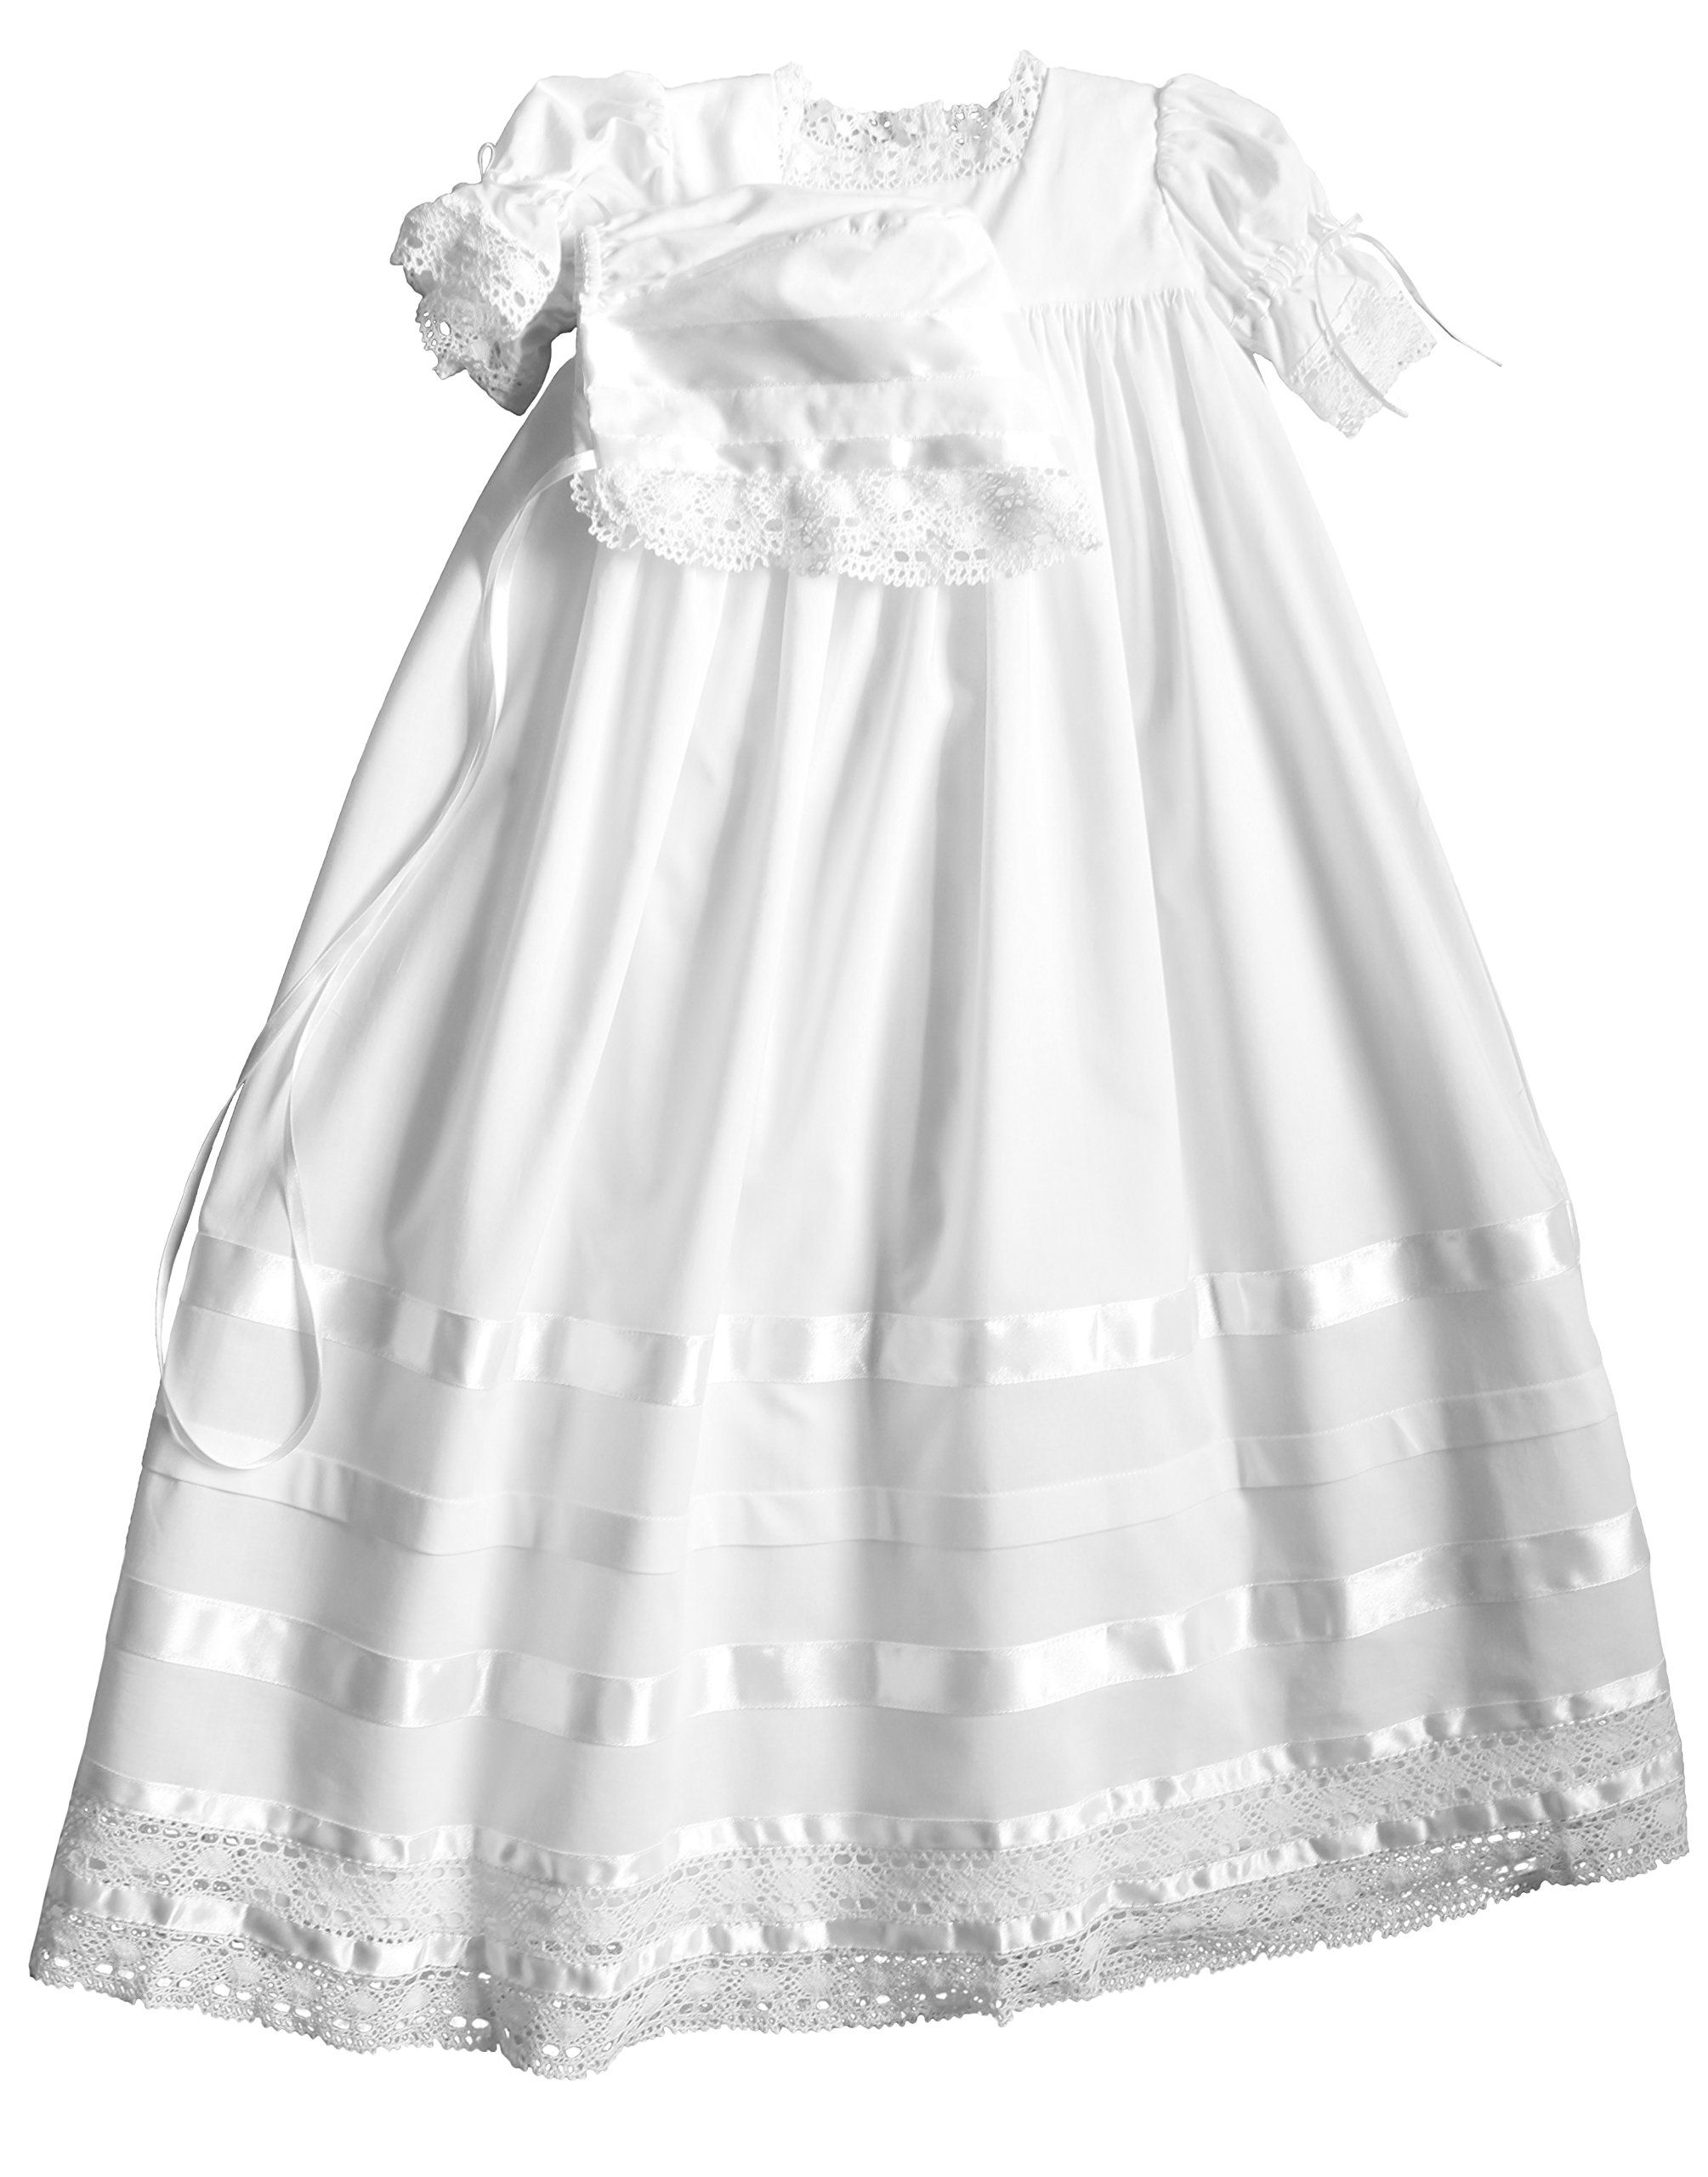 57d7469c2bf7 Strasburg Children Babies Lace Christening Gown Heirloom Baptism Dress  w/Bonnet 6 Month White * A lot more information might be found at the image  url.